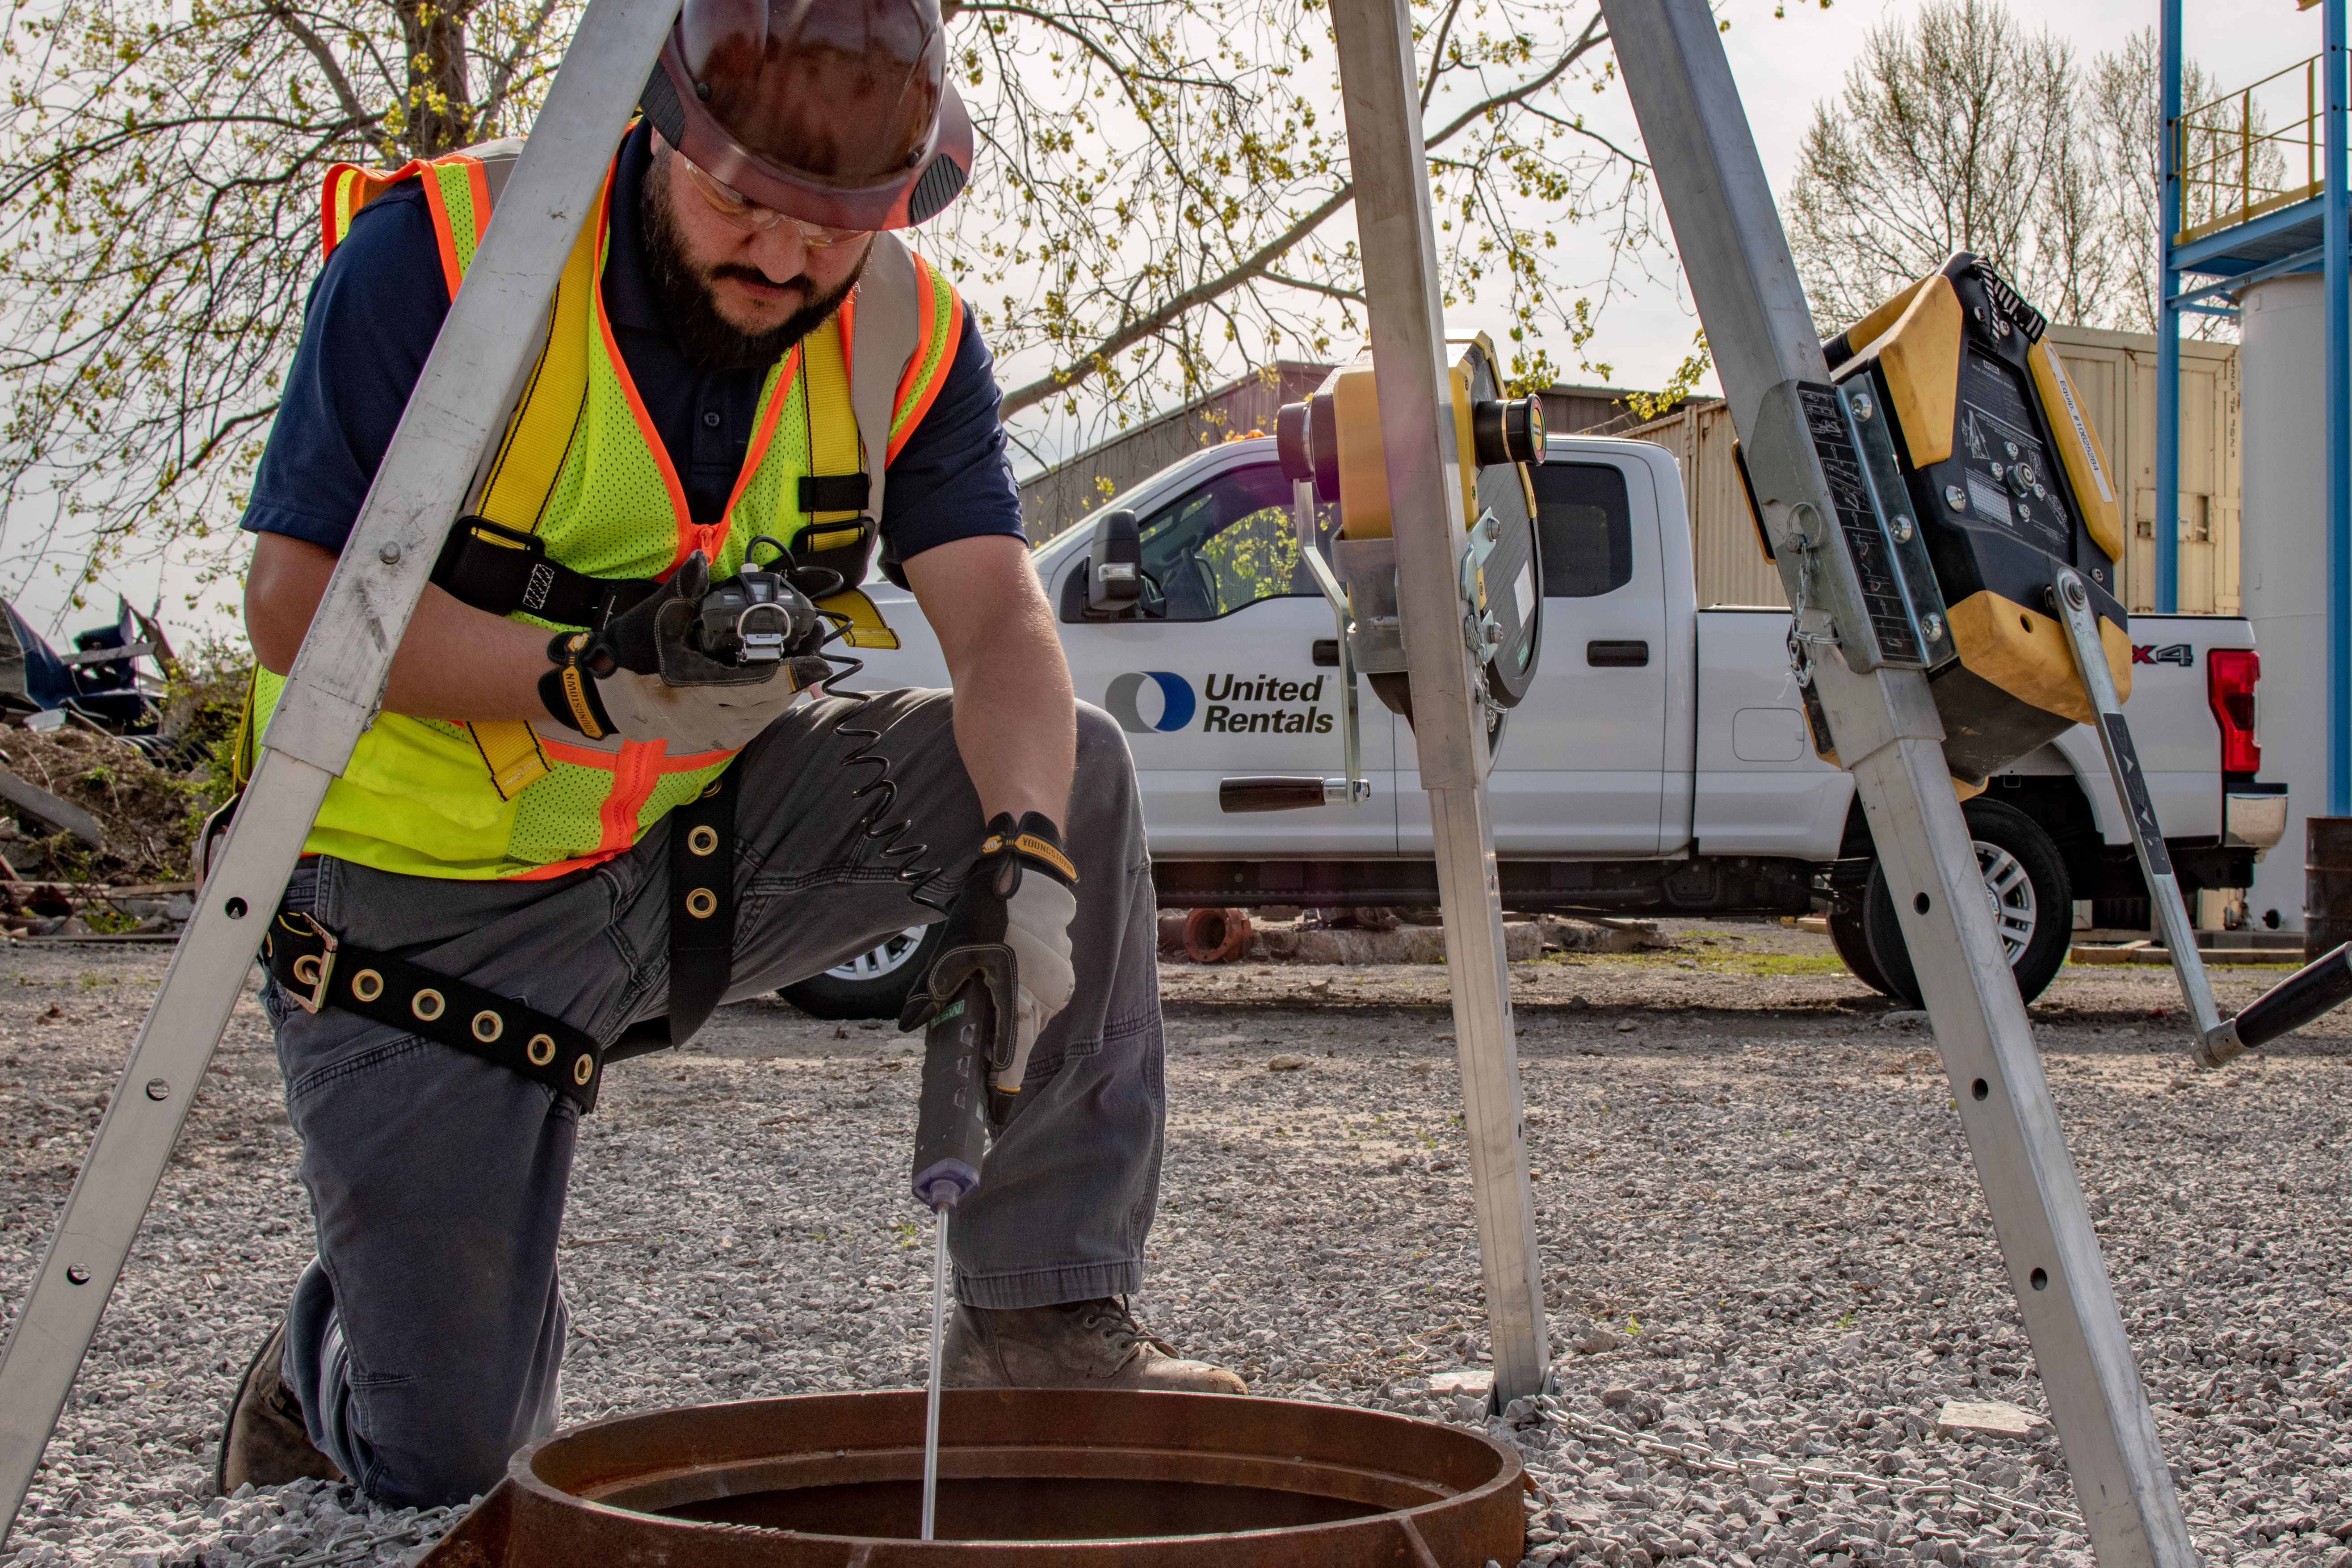 Trenching experts spell out OSHA Confined Spaces